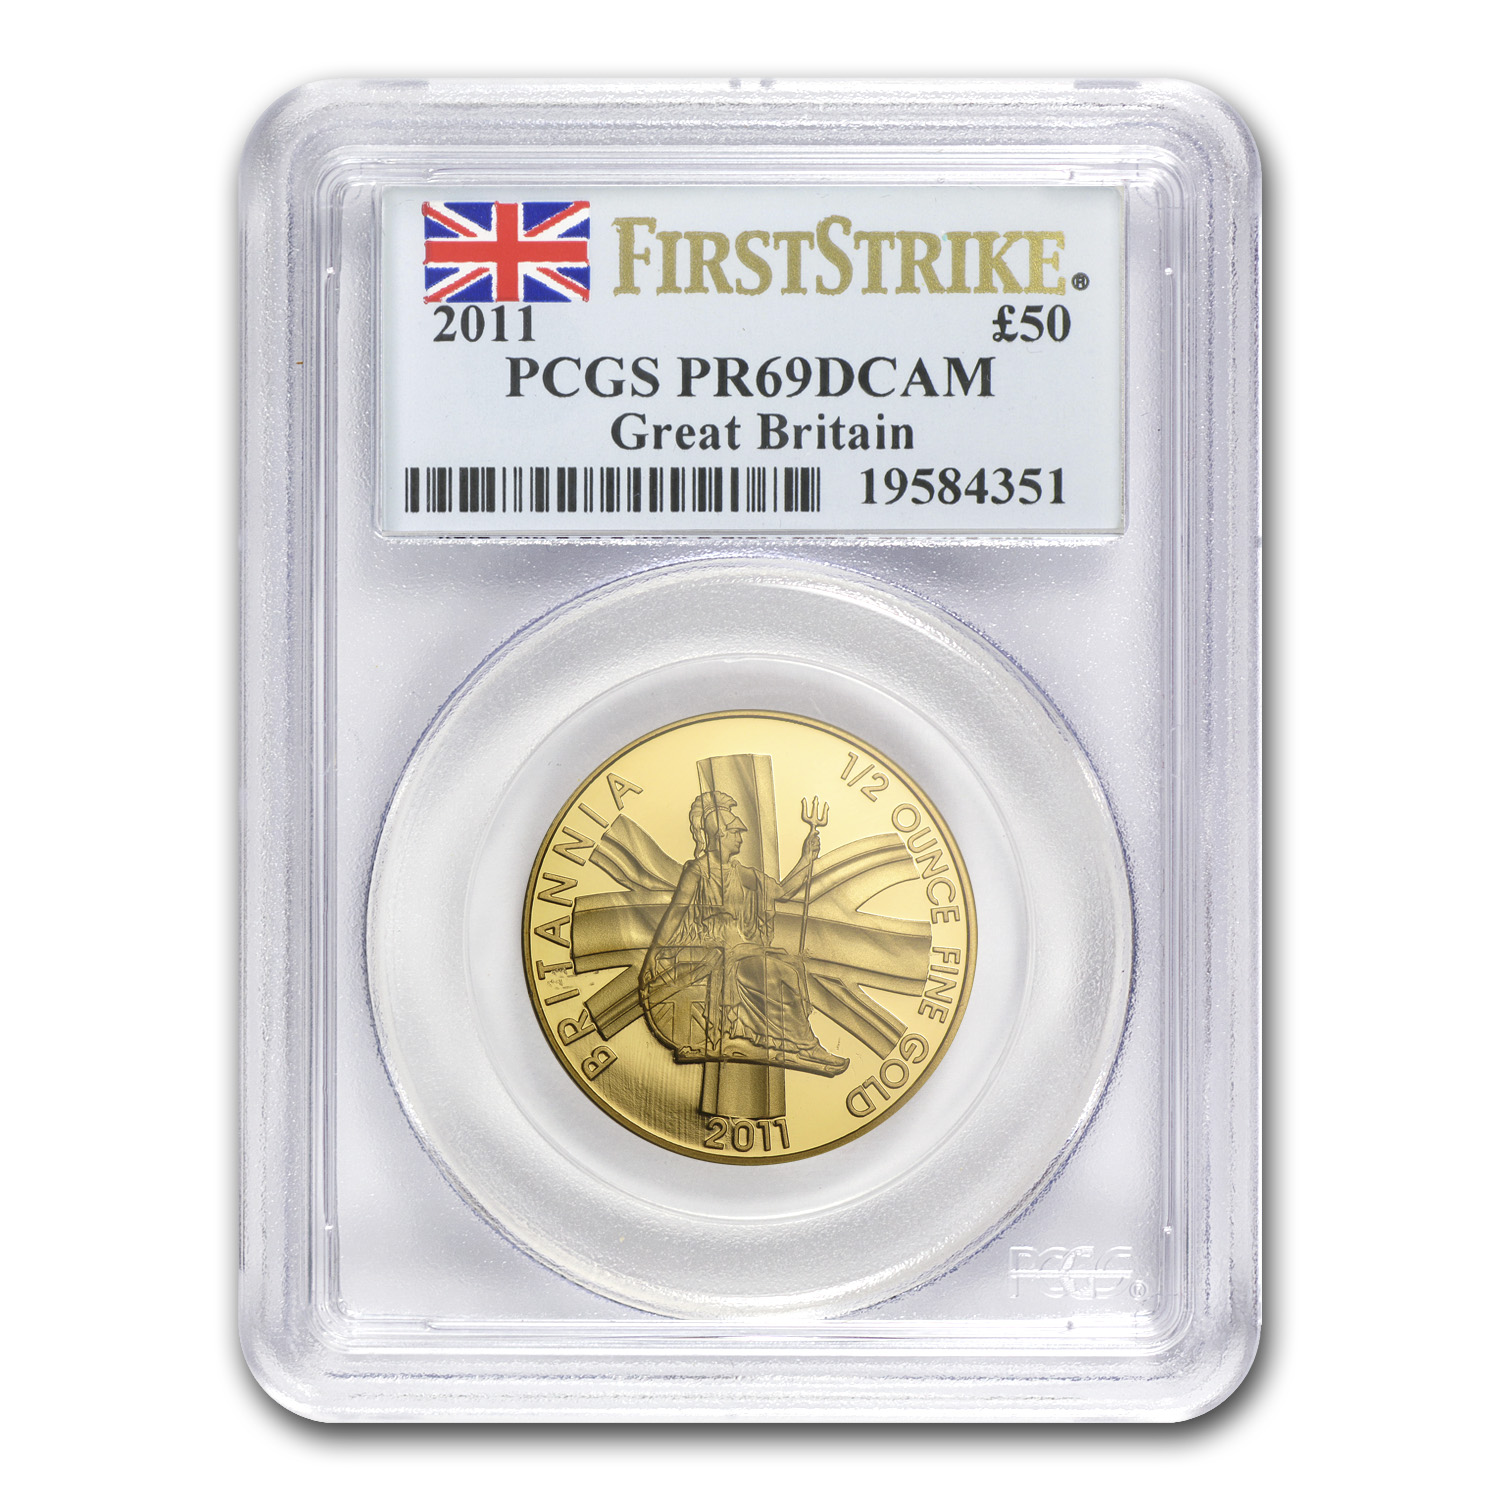 2011 1/2 oz Proof Gold Britannia PR-69 PCGS